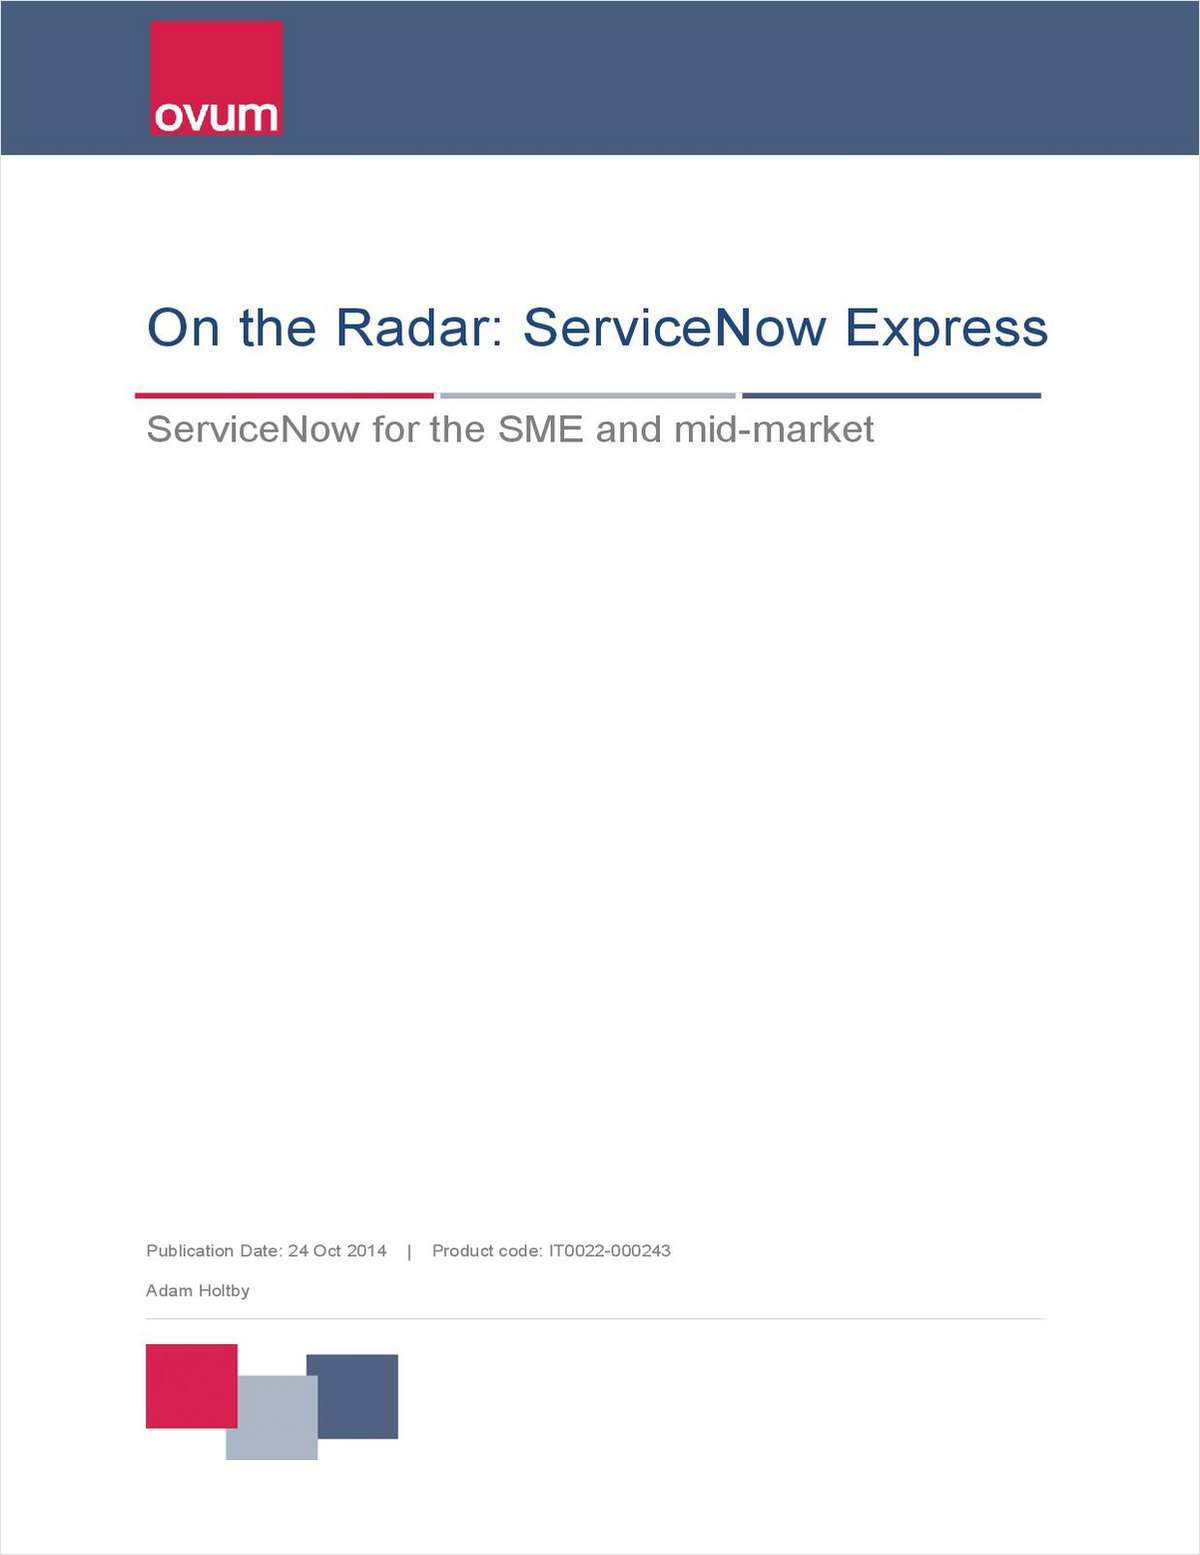 ServiceNow Express: Ovum Analyst Report